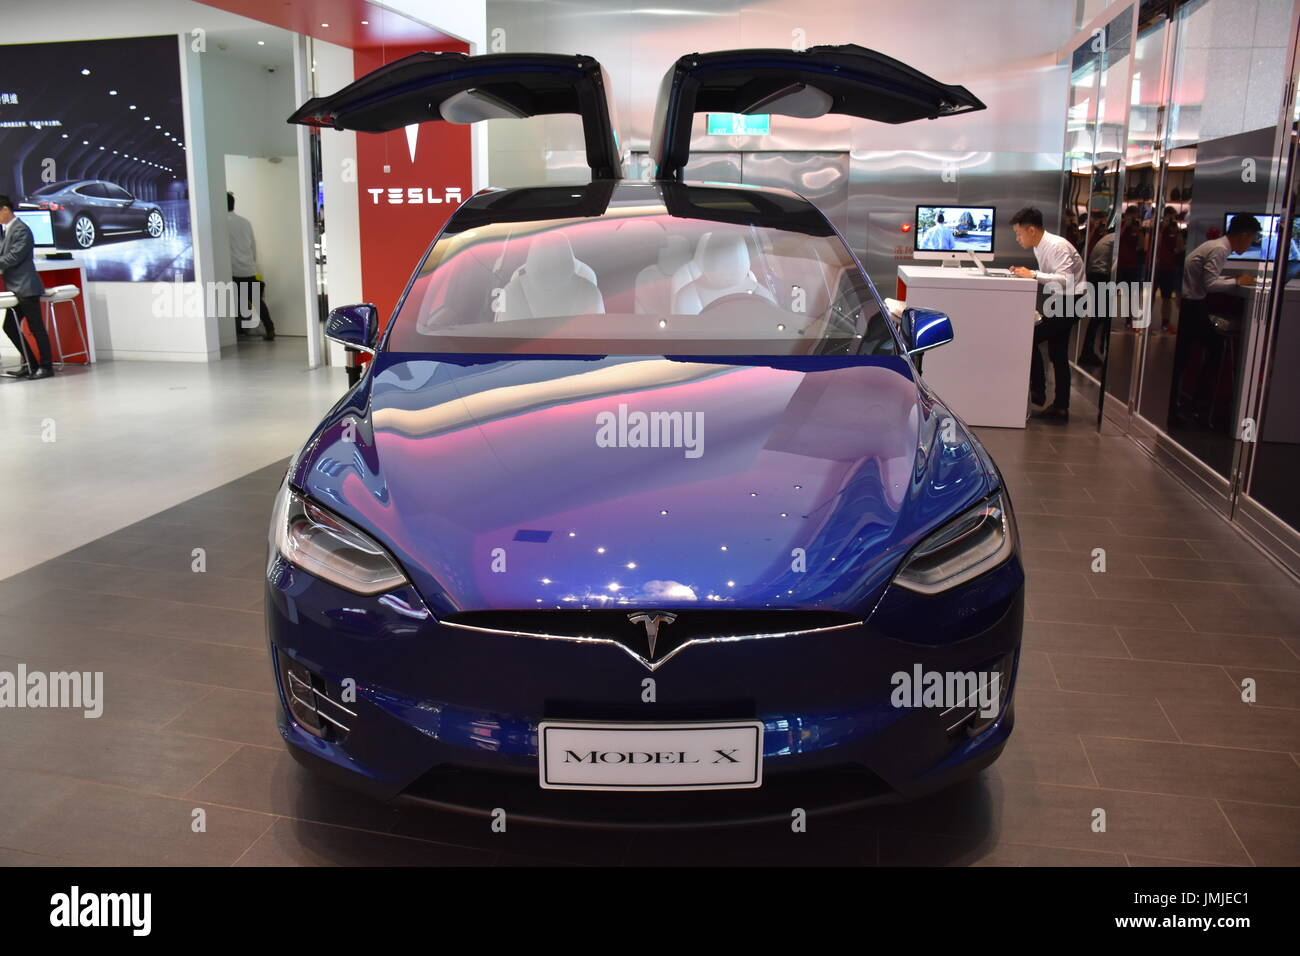 Tesla model x front view of its gull doors plates and symbol of a tesla model x front view of its gull doors plates and symbol of a car in a taipei taiwan show room 2017 buycottarizona Gallery